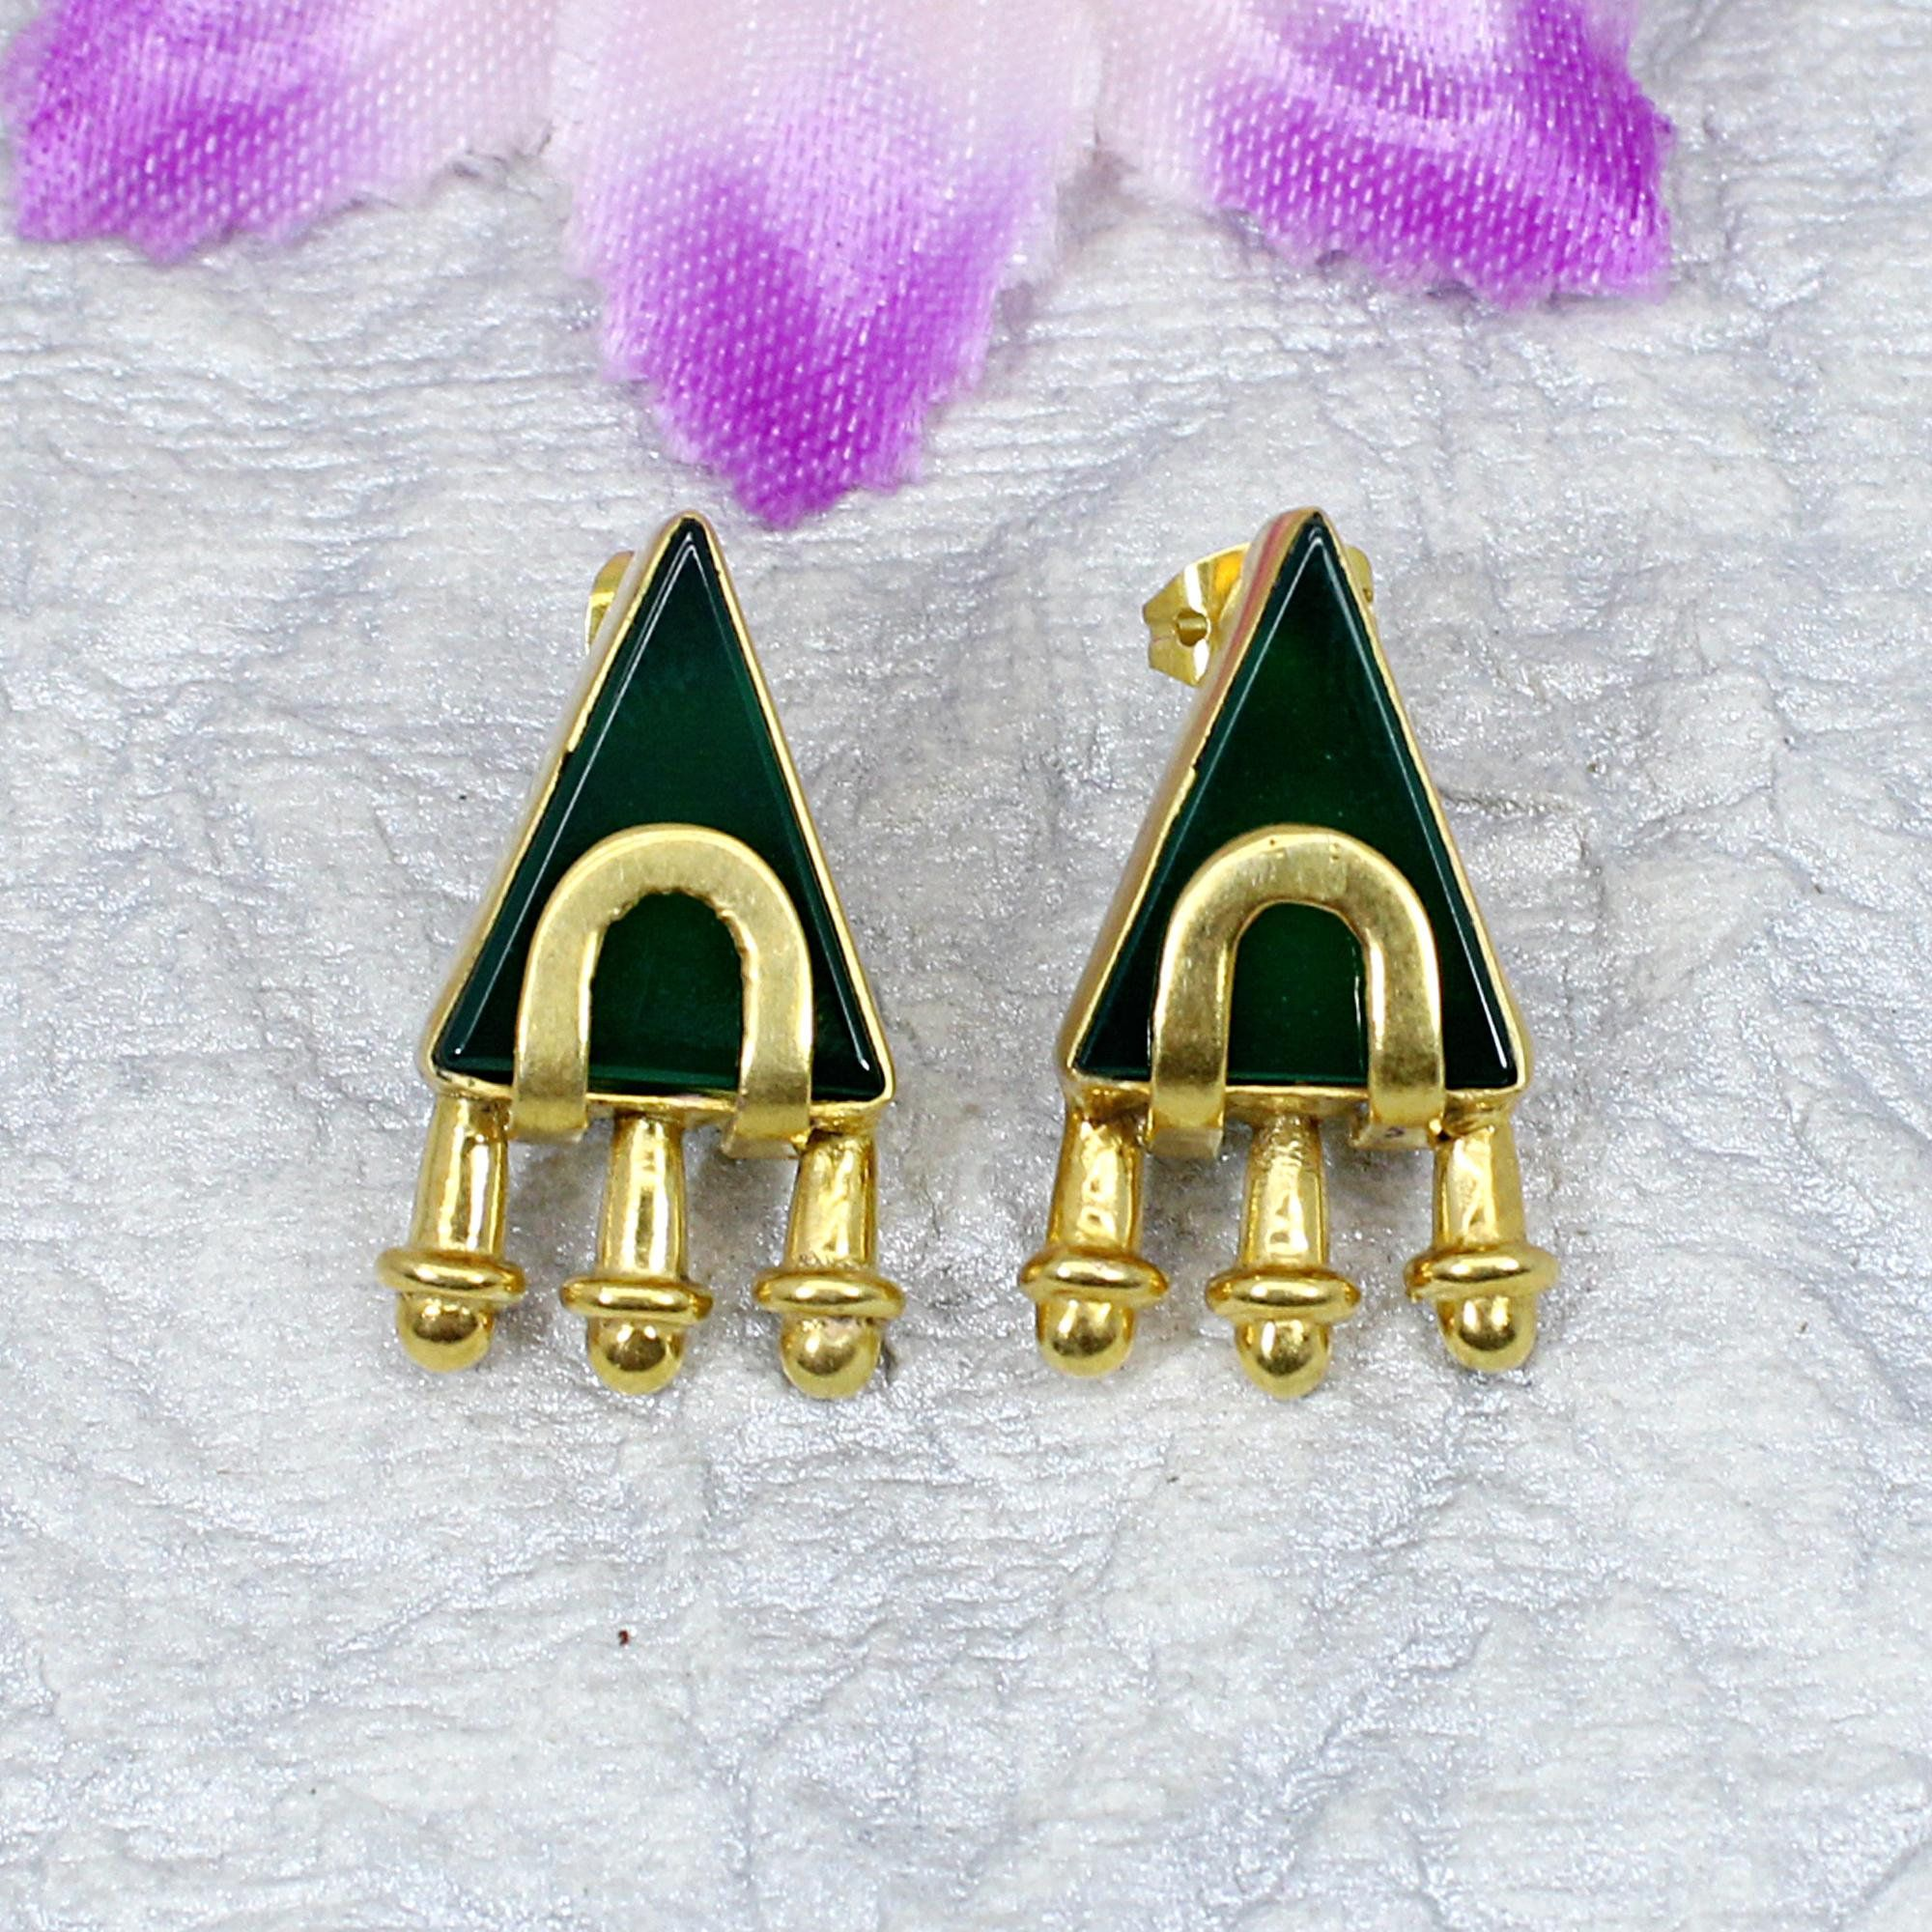 Photo of Green Onyx Stud- Gold Plated Earring- Onyx Jewelry- Green Stone Earring- Vintage Stud Earring- Handmade Jewelry- Onyx Earring-Dainty Jewelry